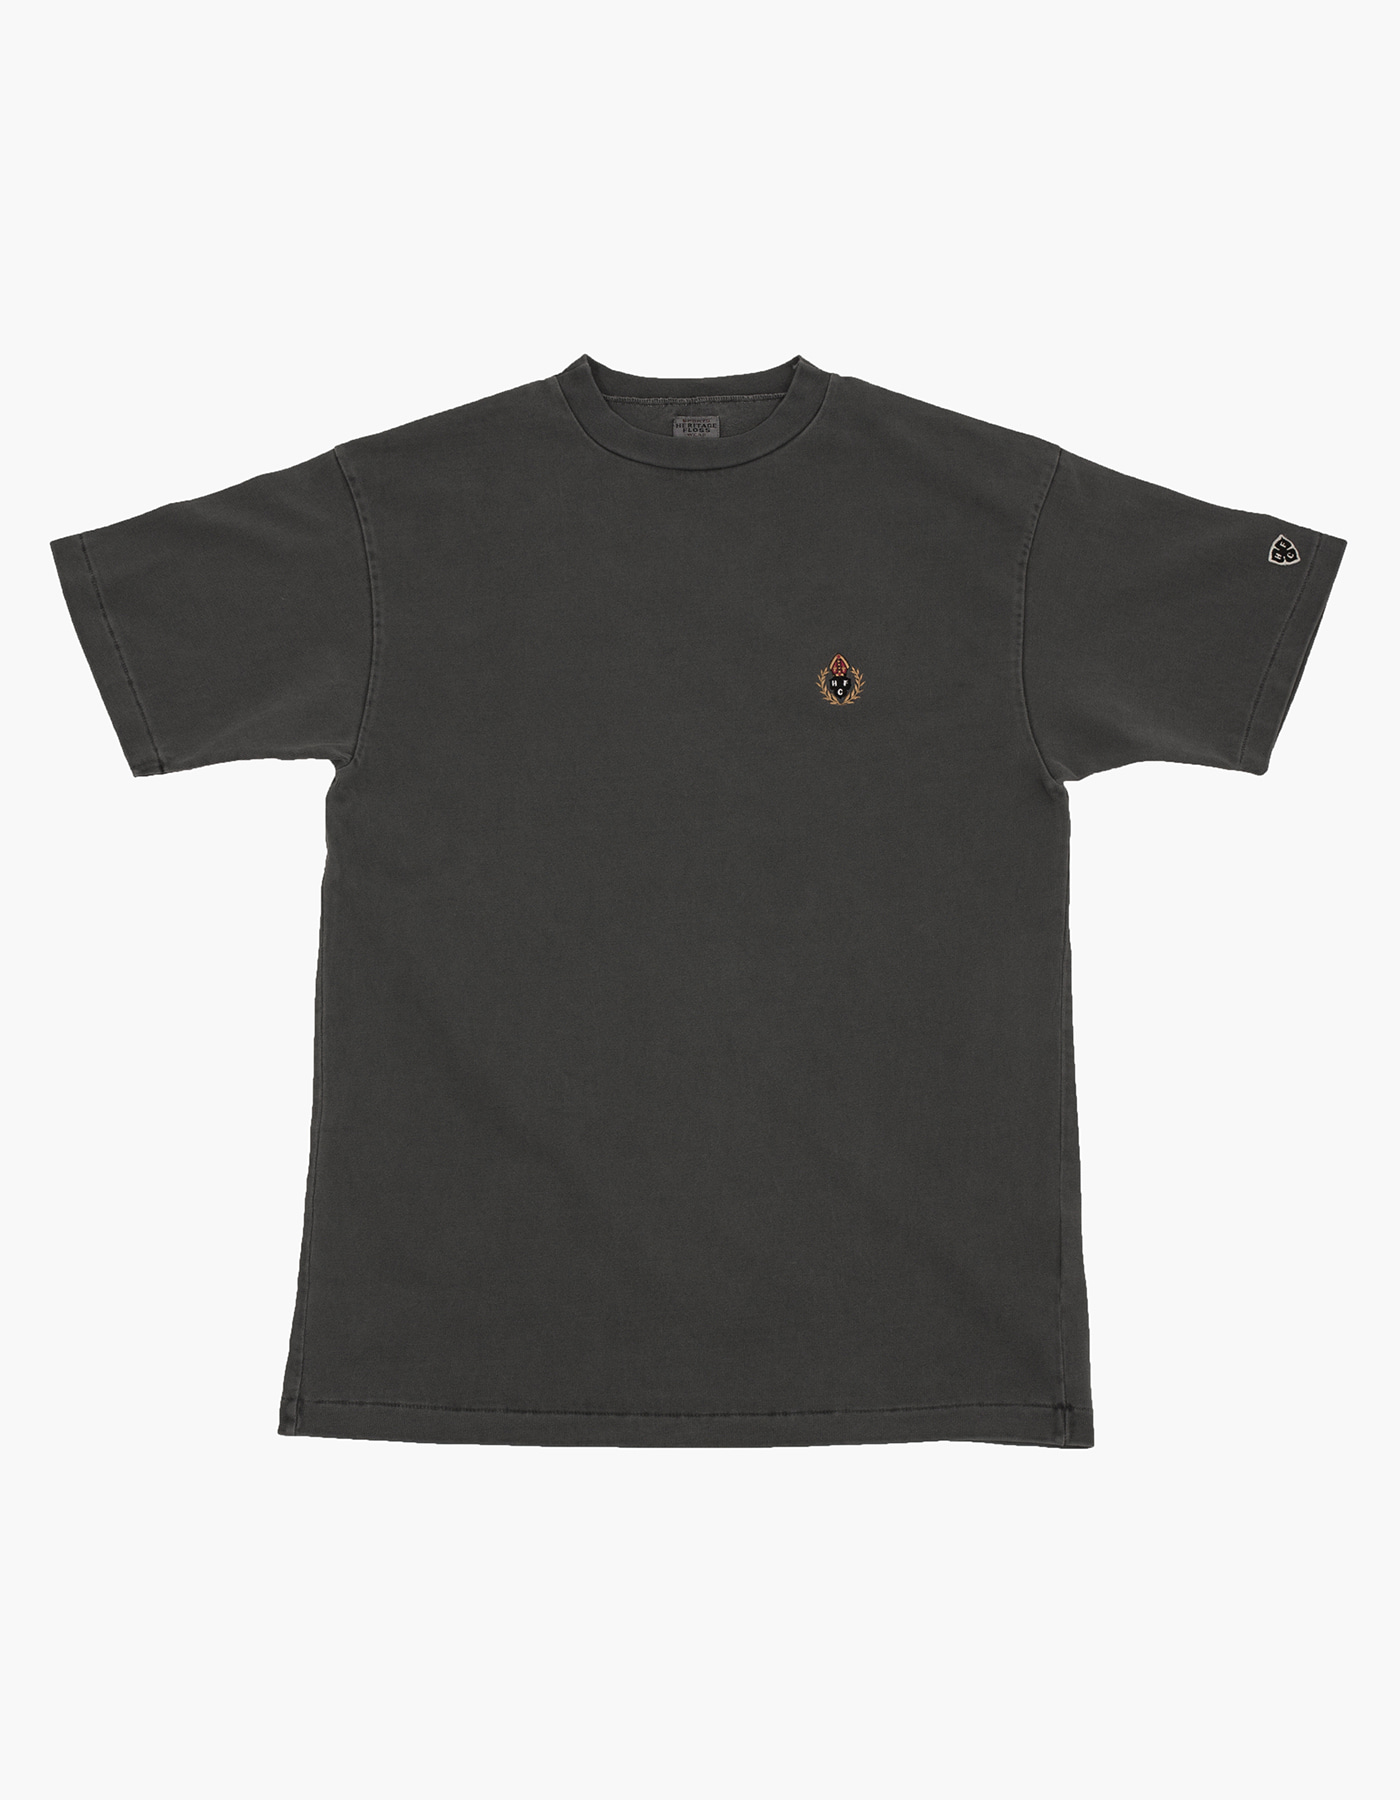 HFC CREST 10S COMPACT YARN T-SHIRT / CHARCOAL